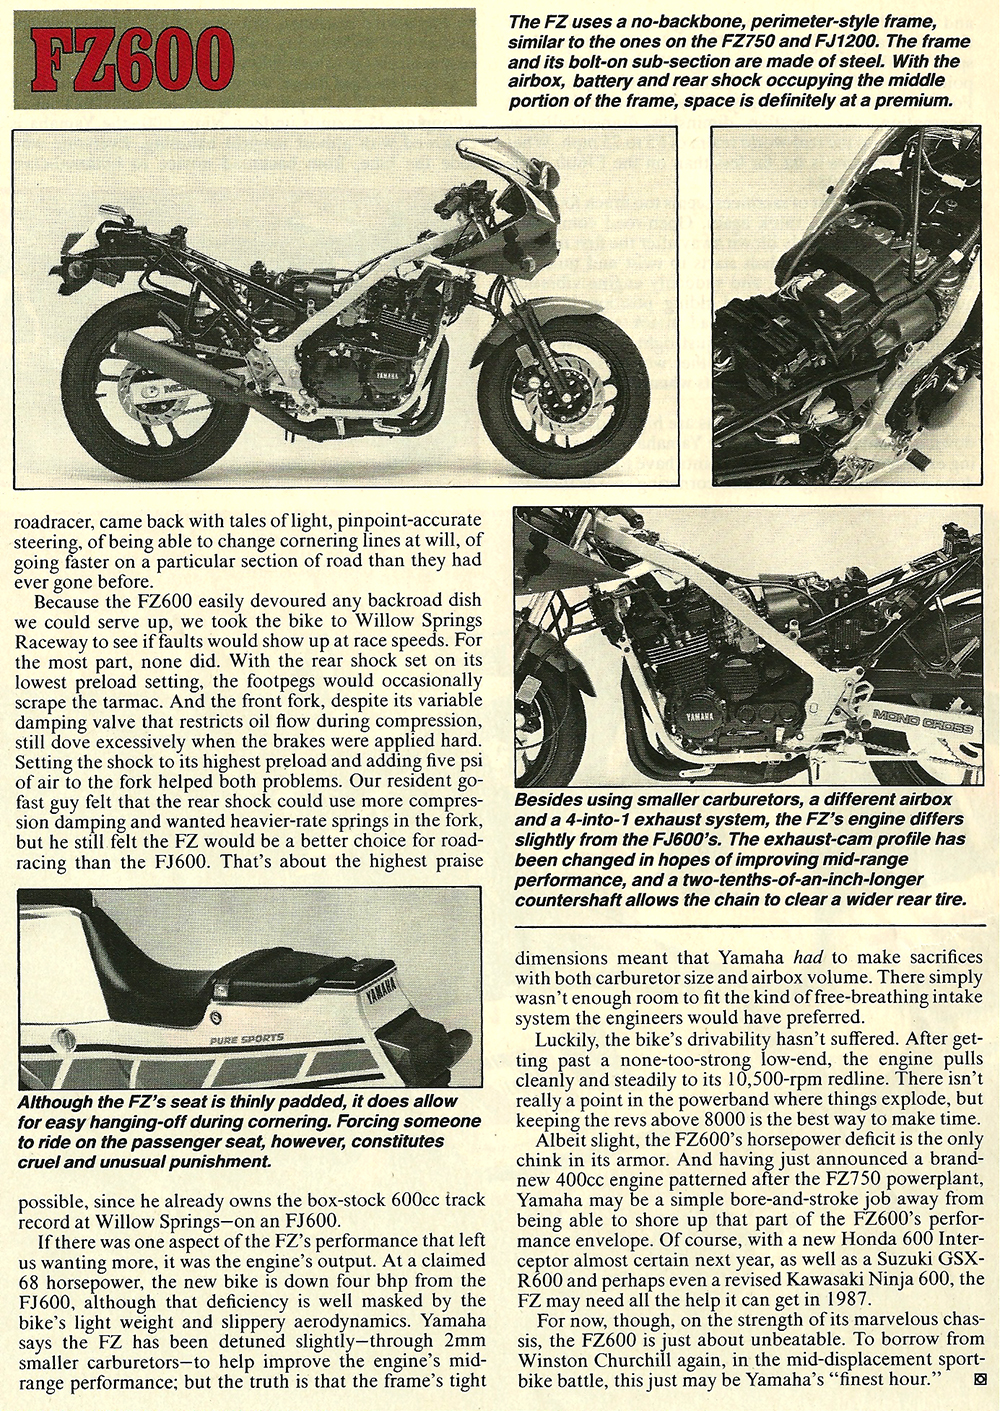 1986 Yamaha FZ600 road test 05.jpg